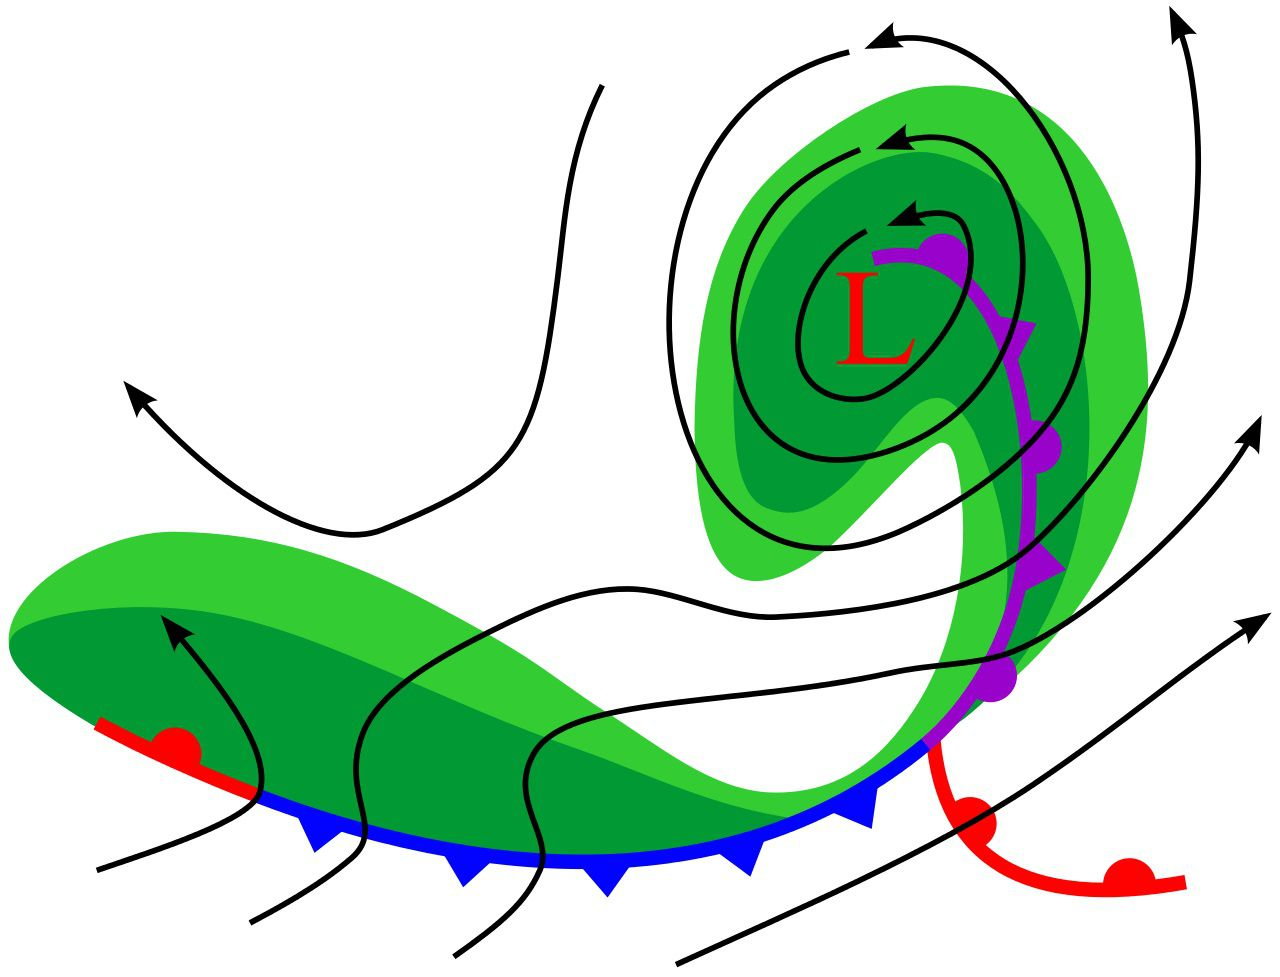 Diagram showing an occluded front.